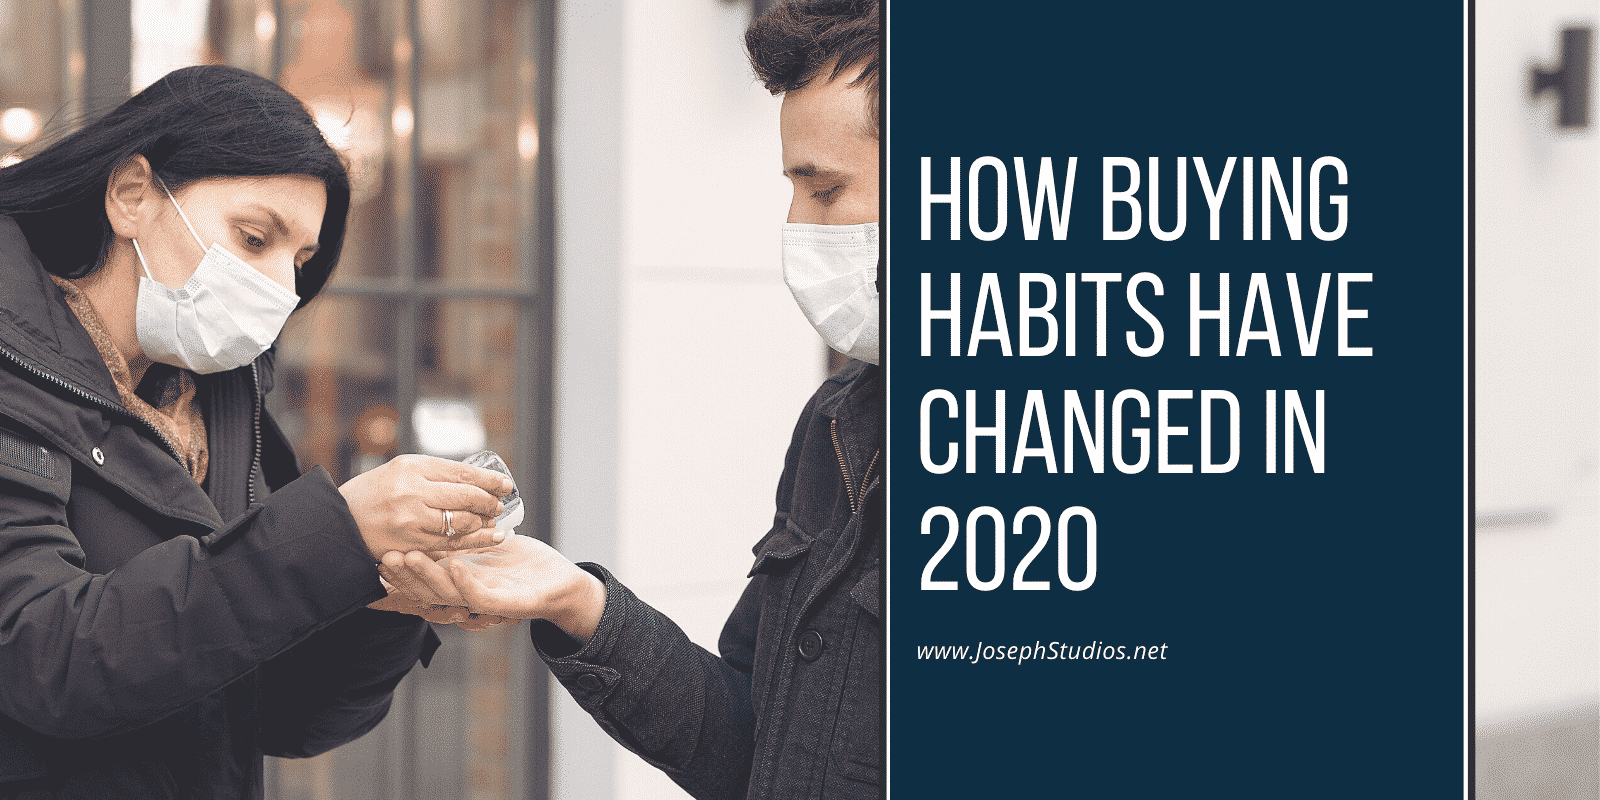 How Buying Habits Have Changed in 2020, How Buying Habits Have Changed in 2020